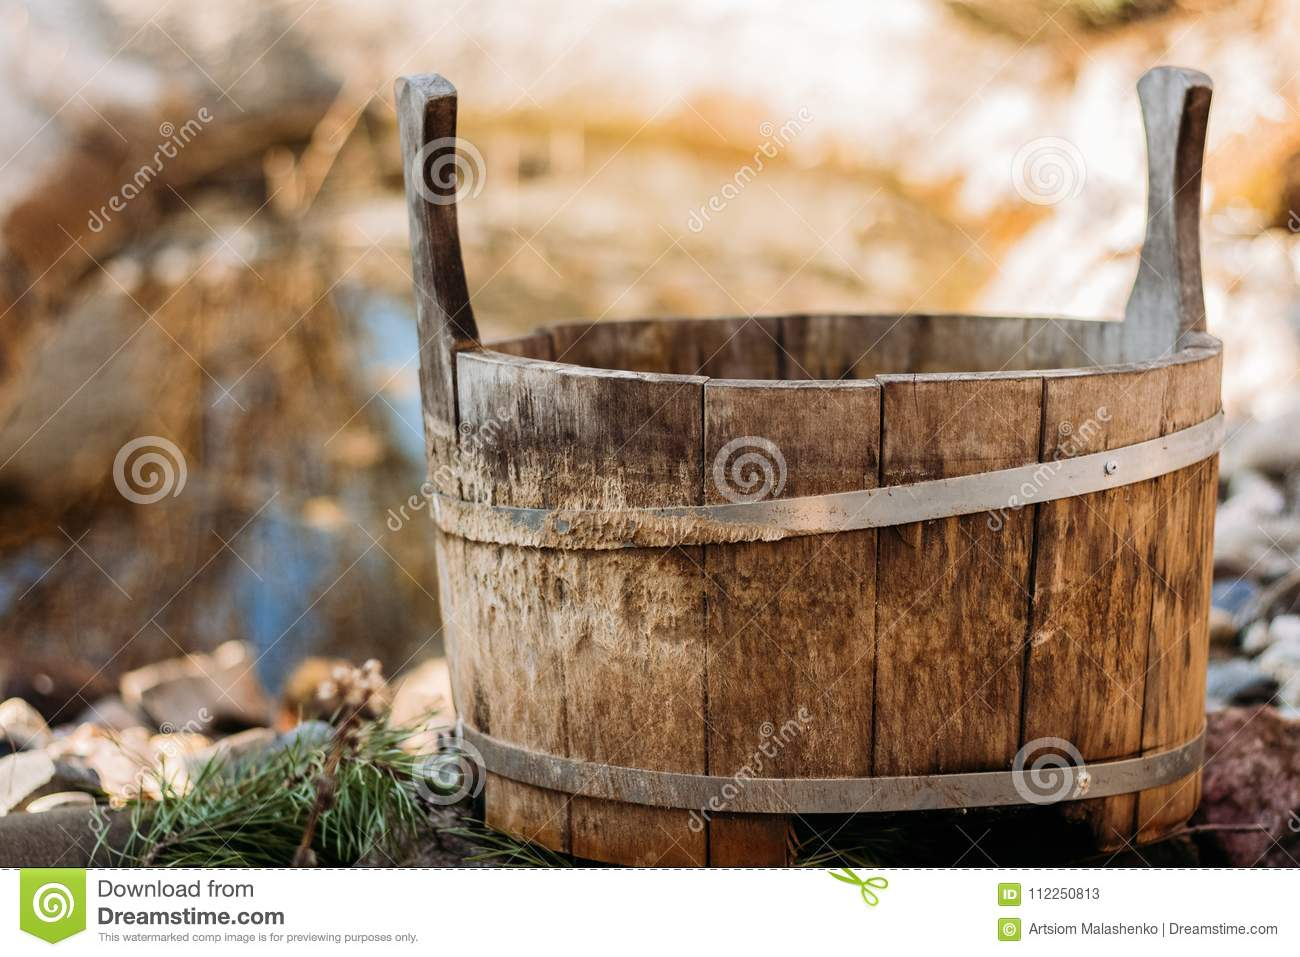 Old wooden bath tub stock image. Image of object, pond - 112250813